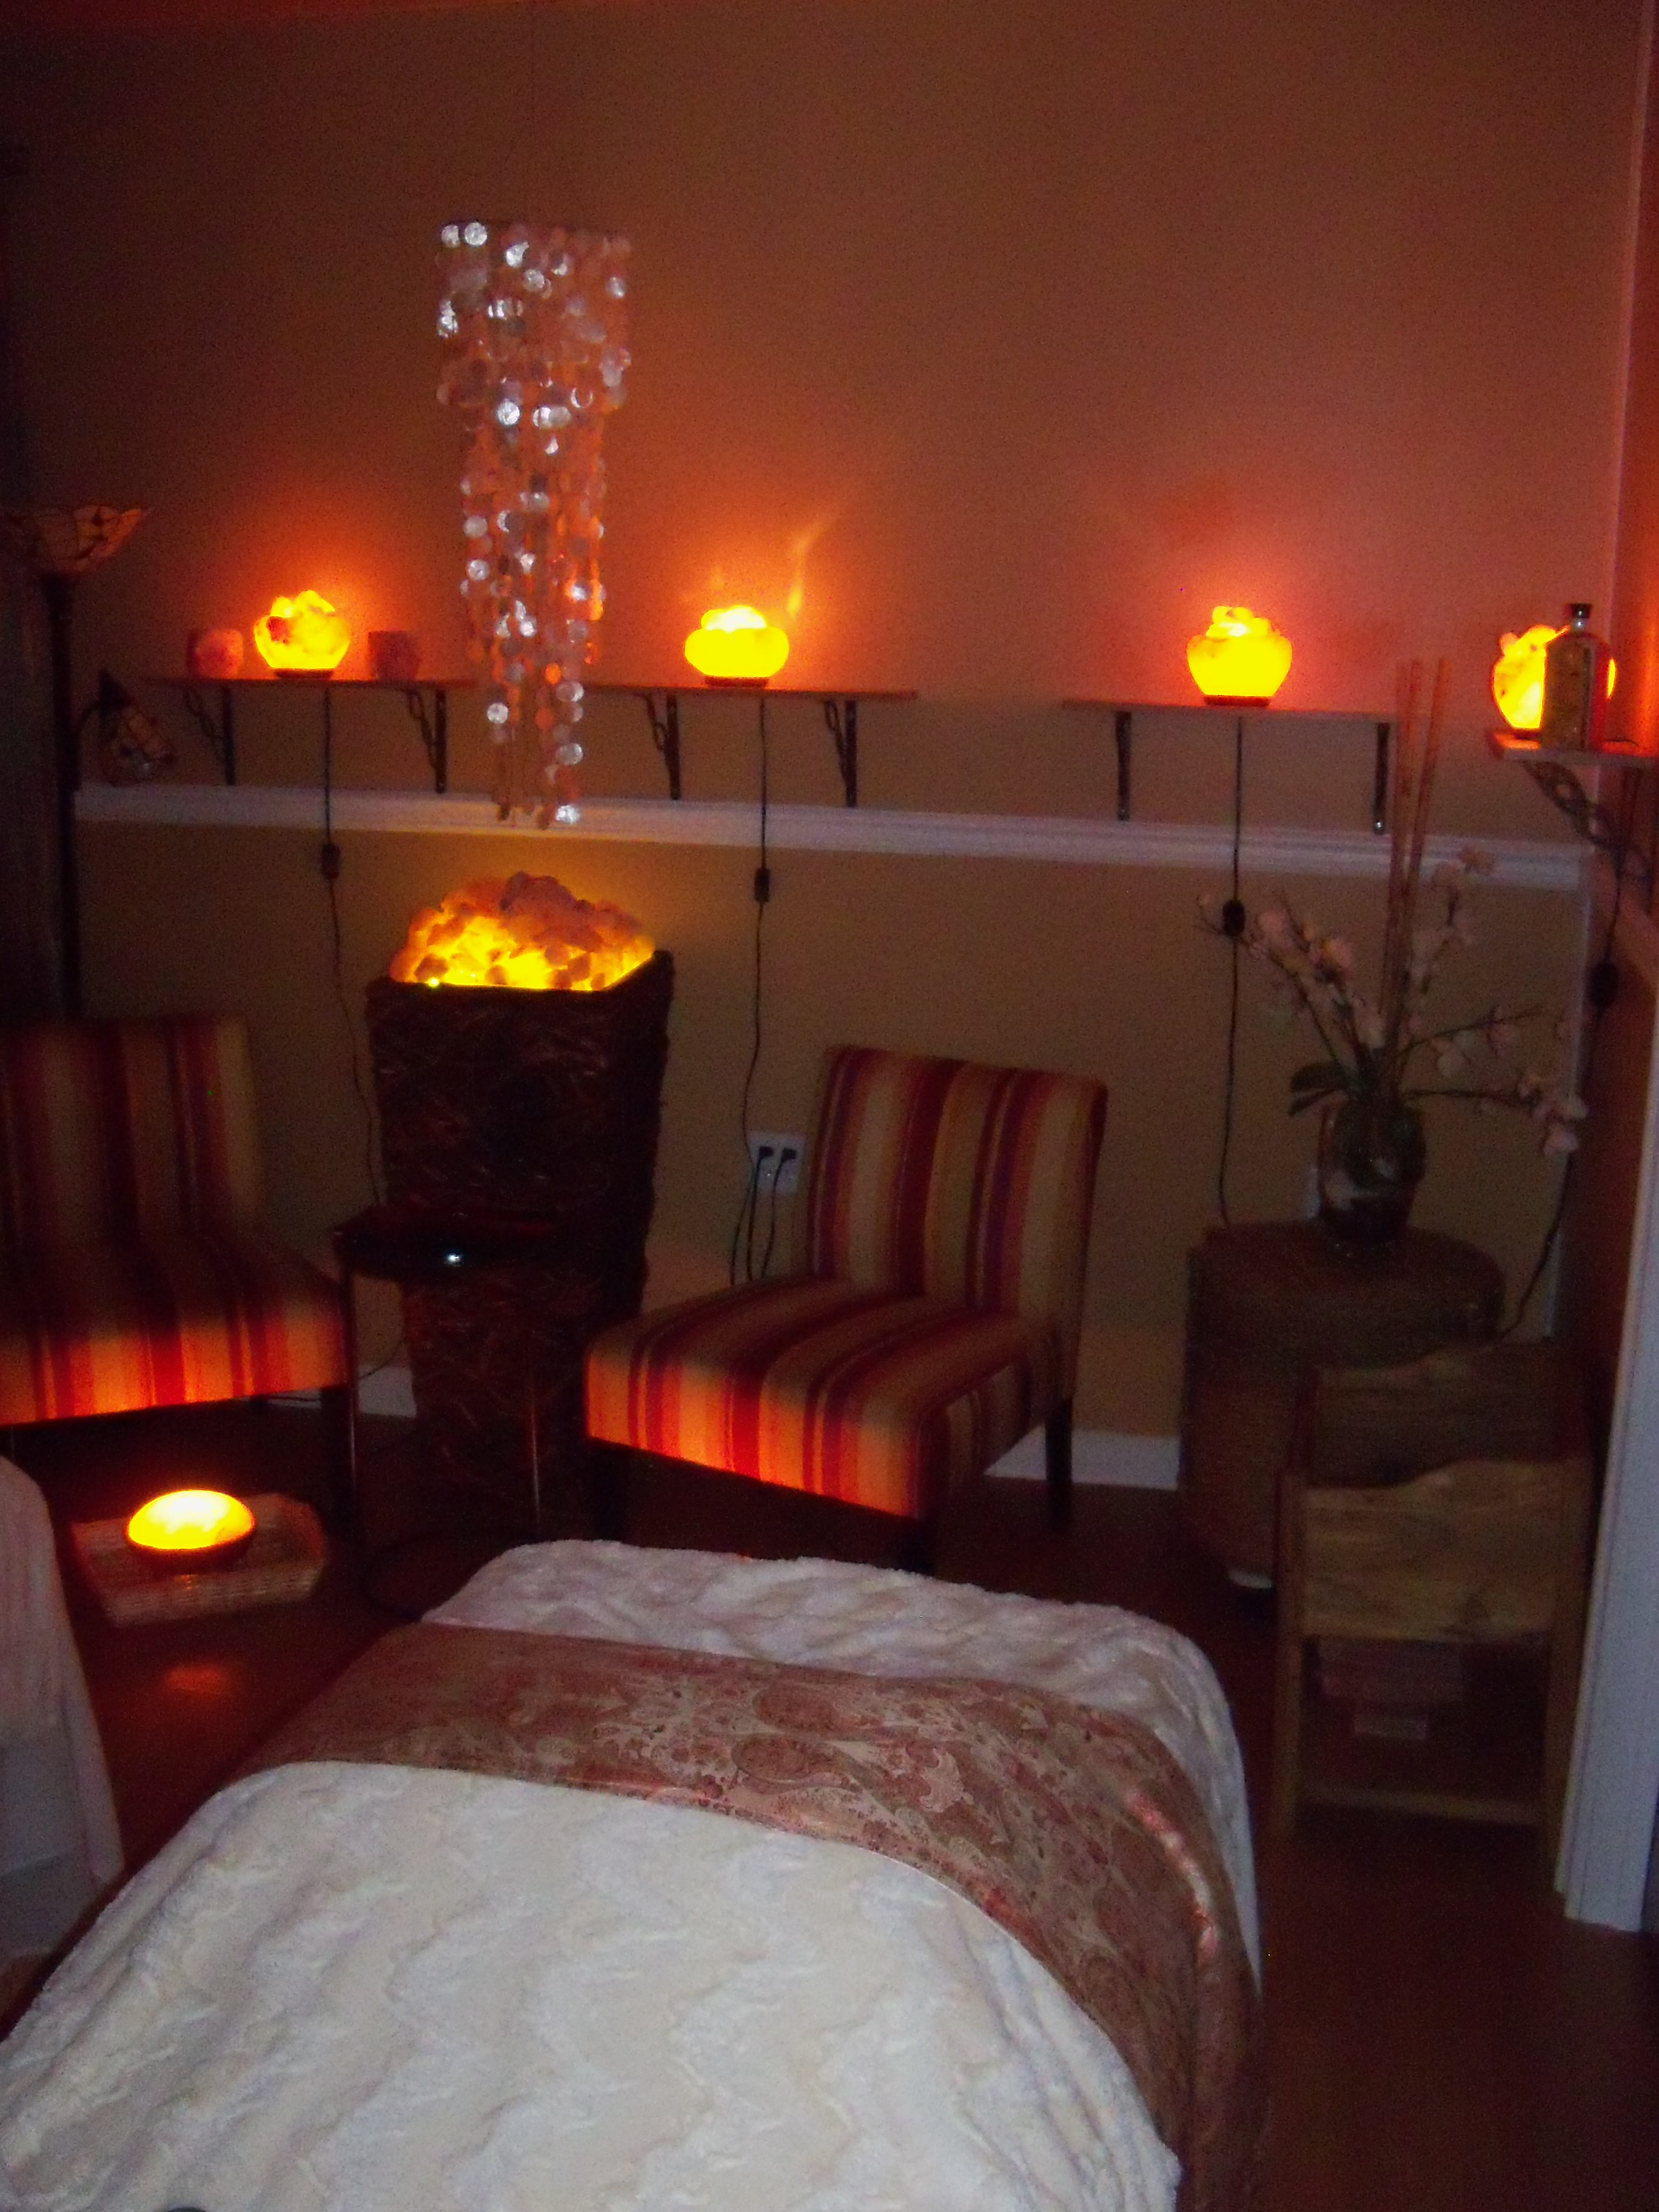 Massage Therapy Room Design Ideas: Renovations Have Been Completed At A Local Massage Therapy